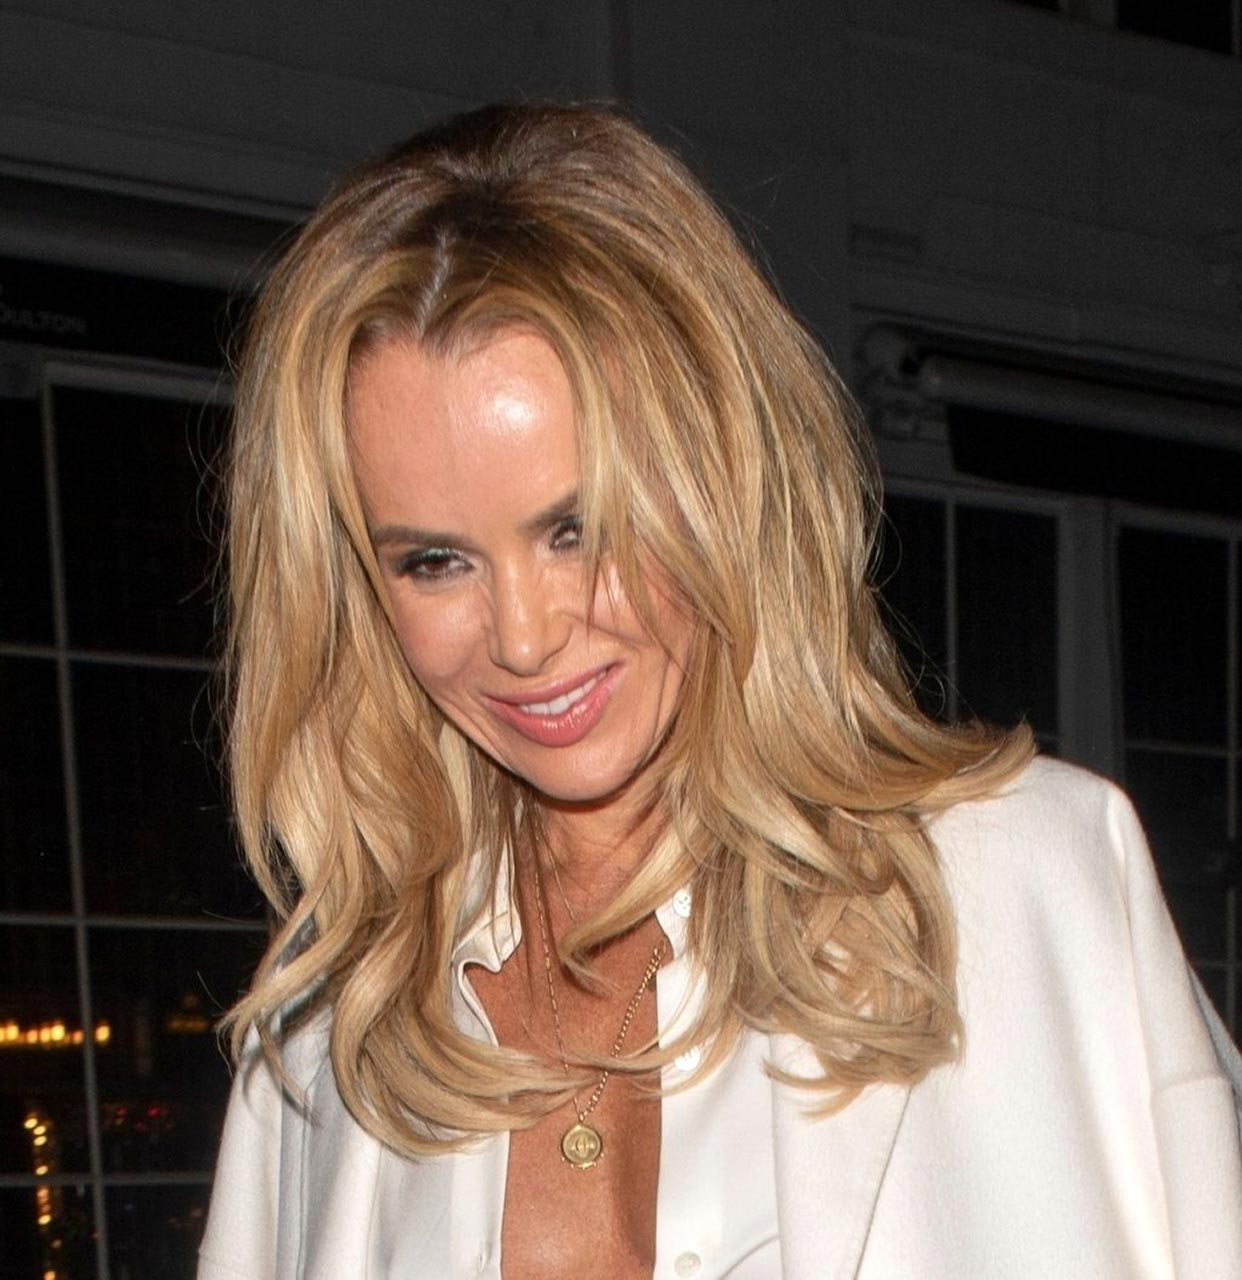 Amanda Holden Tits amanda holden naked tits flash while braless - scandal planet